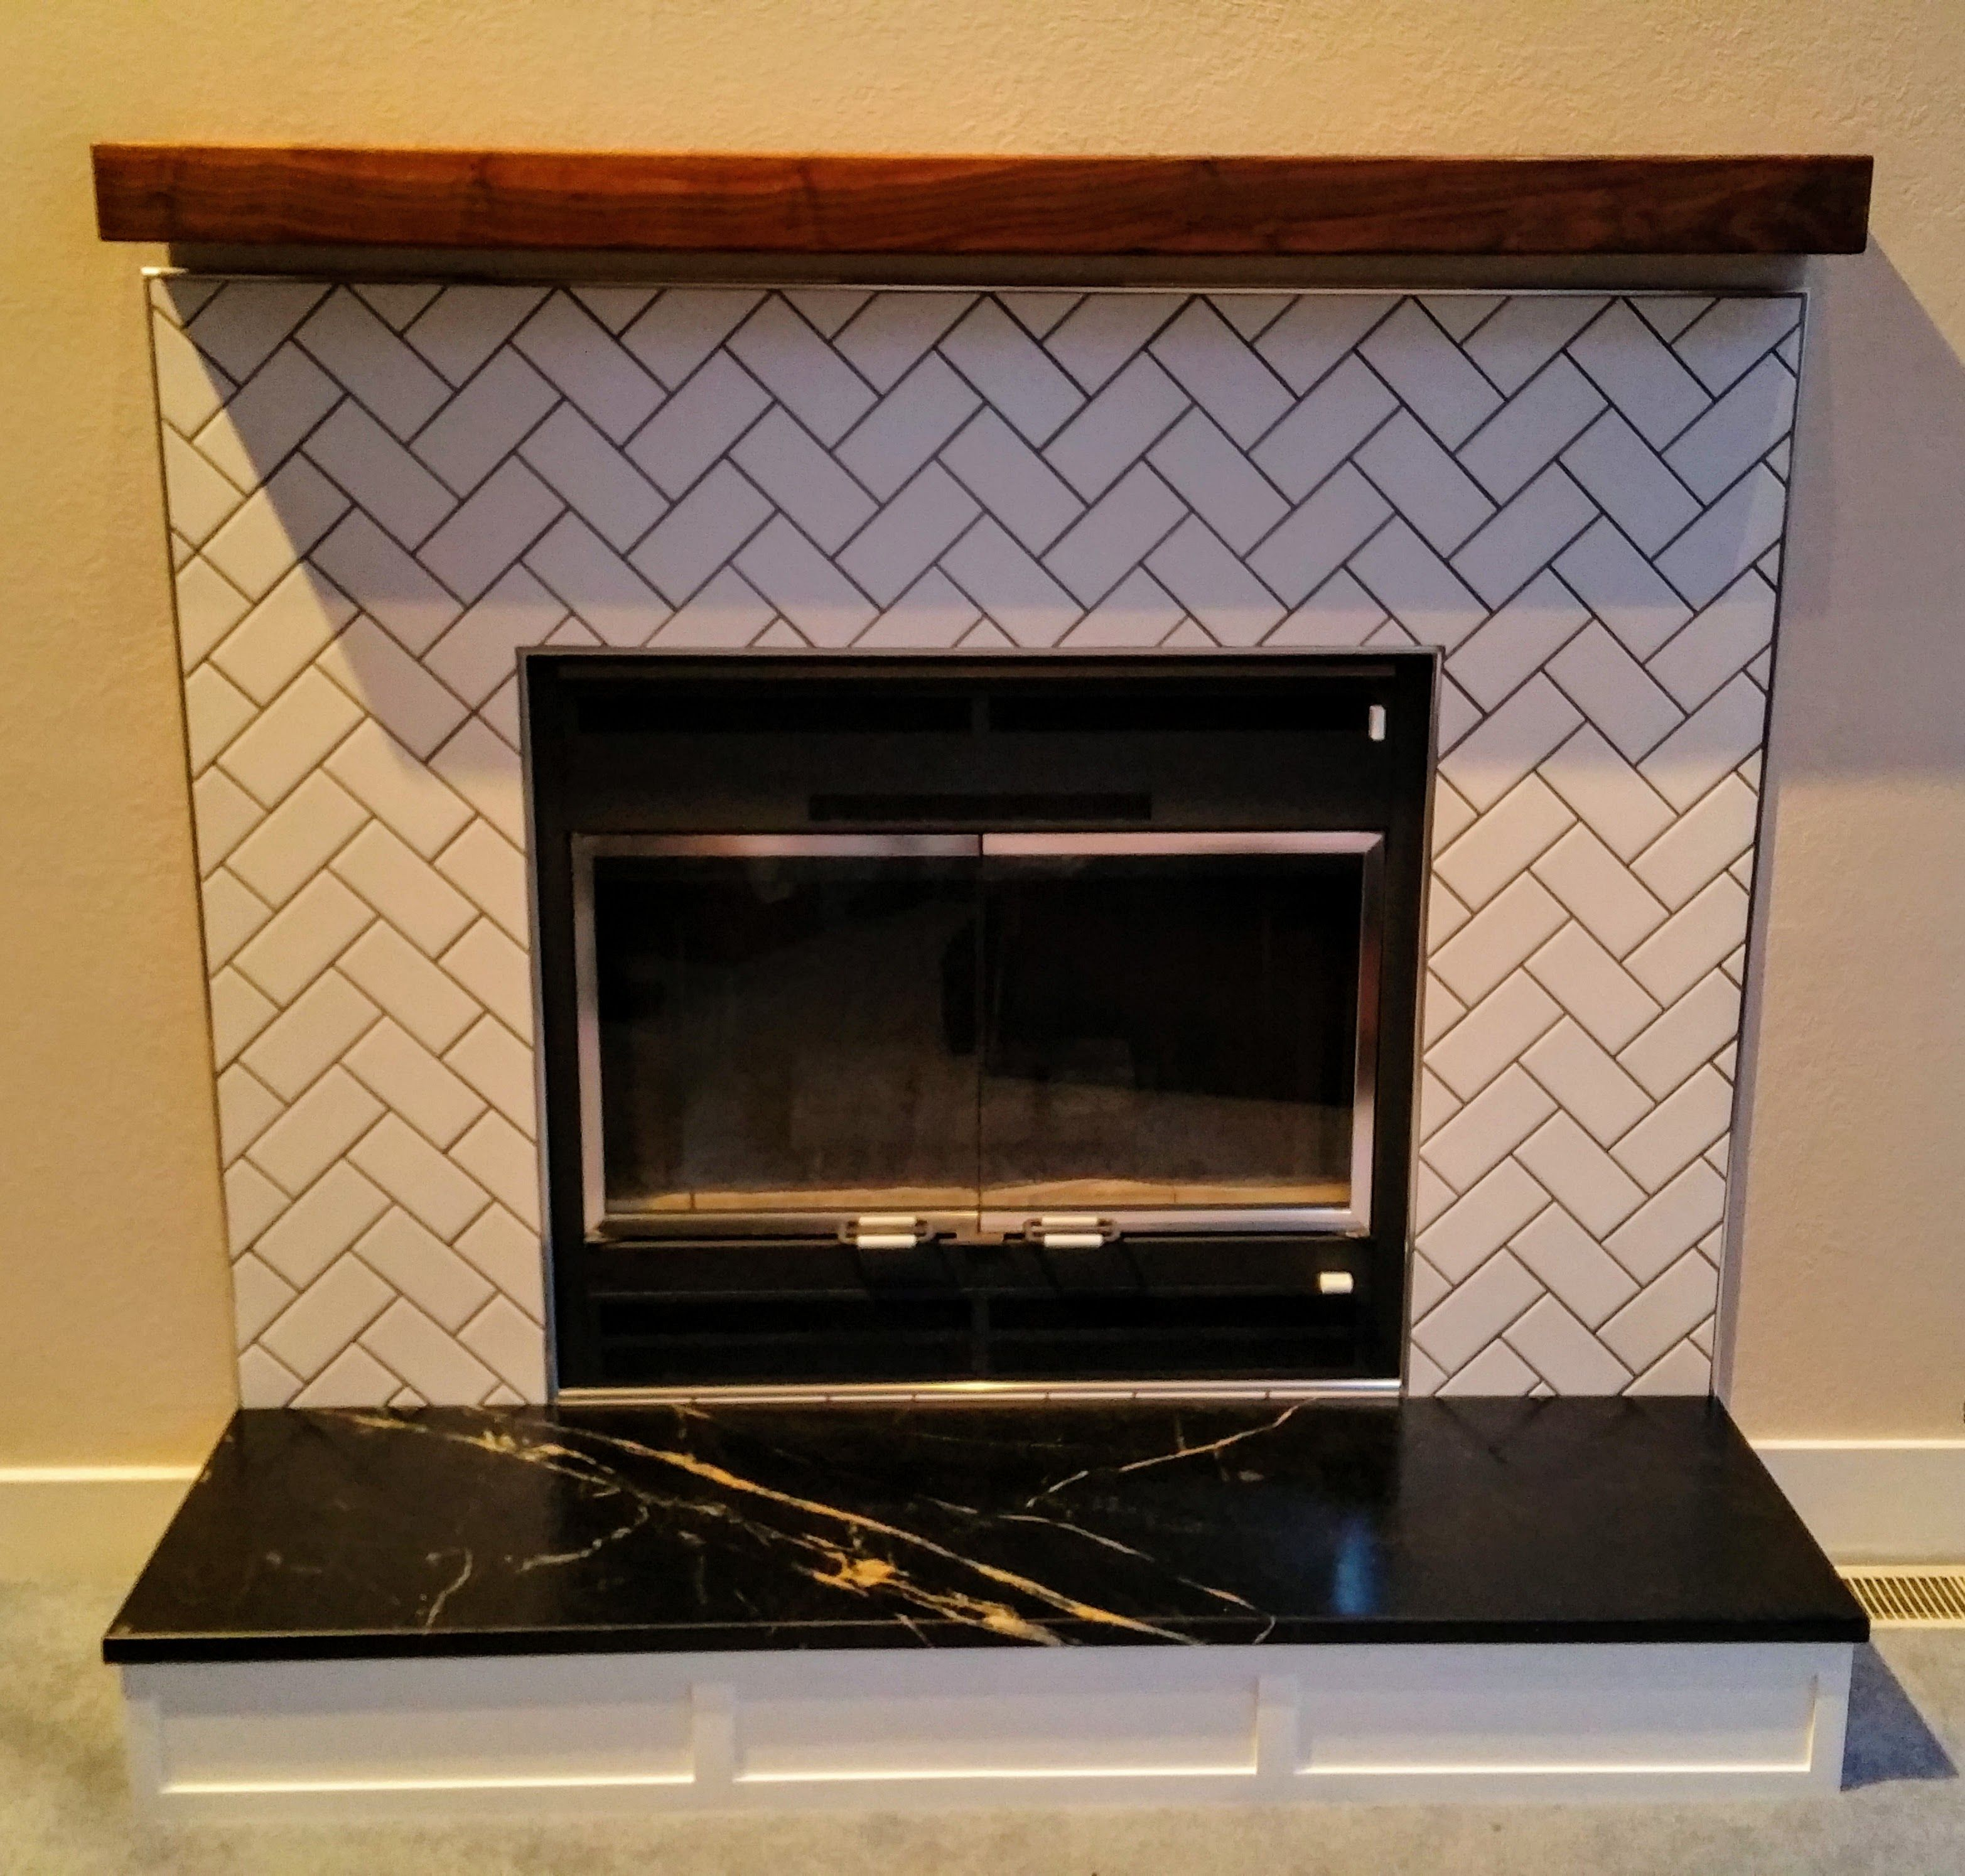 Reclaimed Mantles Fireplace Tile Surround Fireplace Tile Fireplace